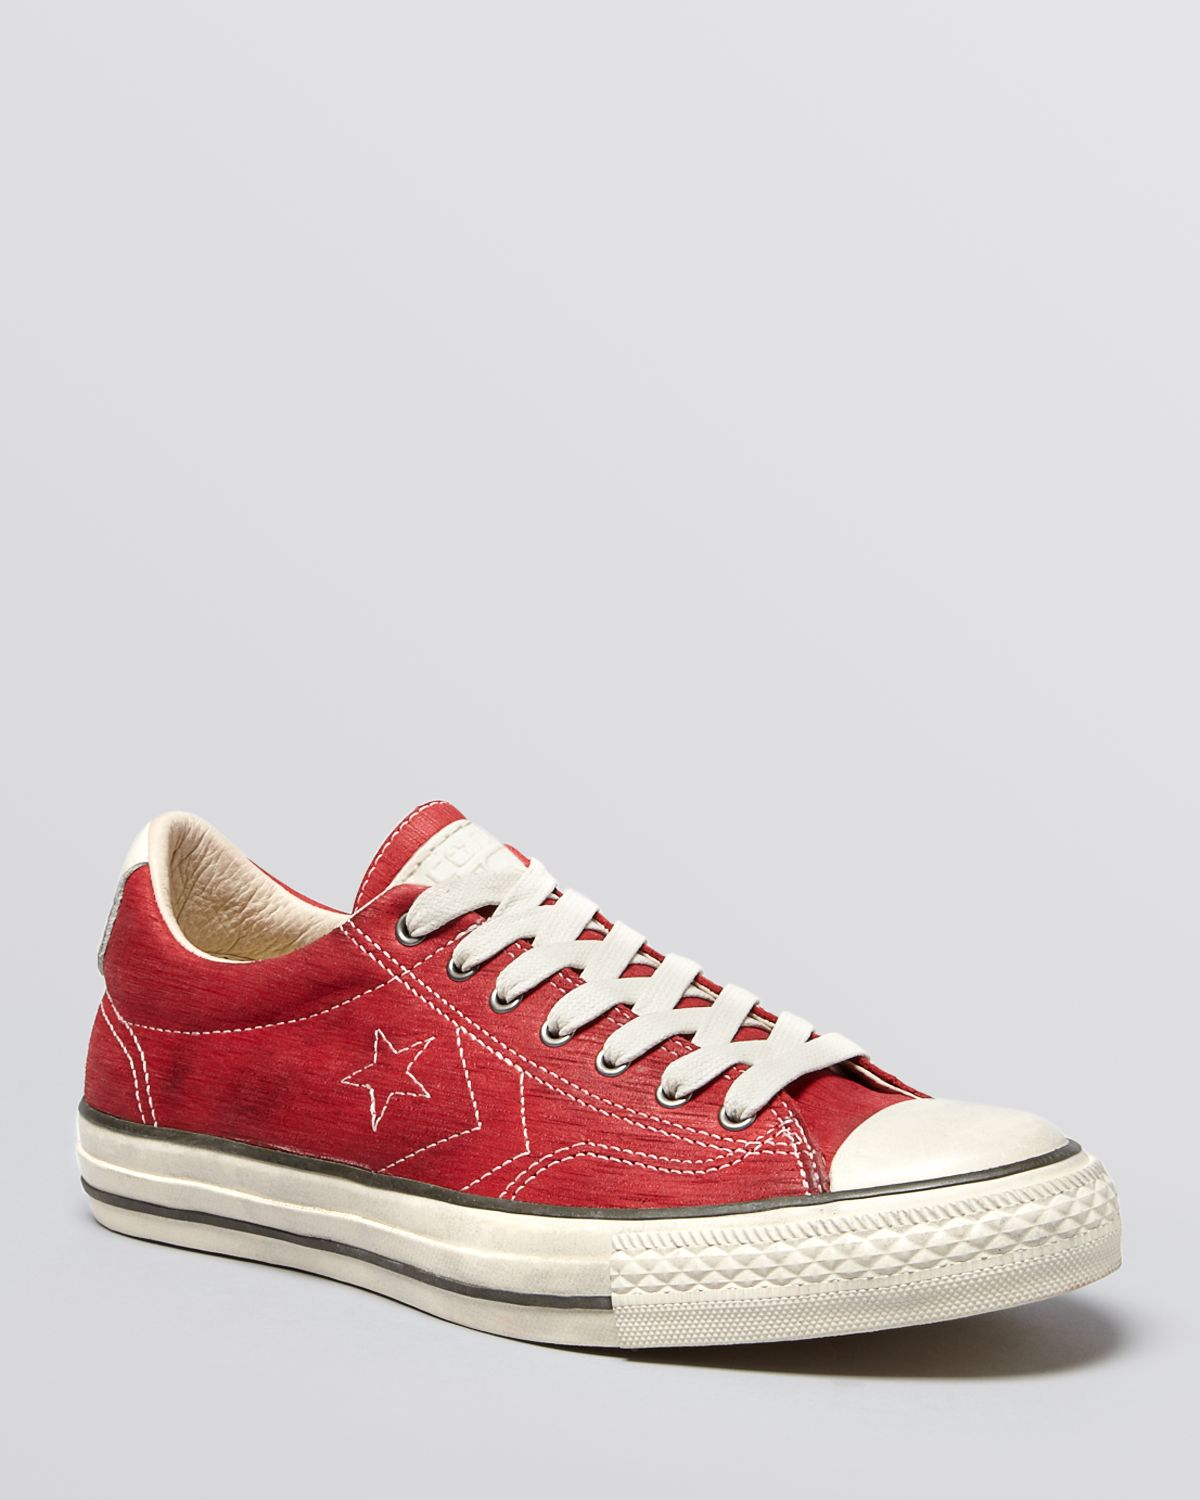 5f81b0a2d0a1 Lyst - Converse By John Varvatos Star Player Ev Sneakers in Red for Men